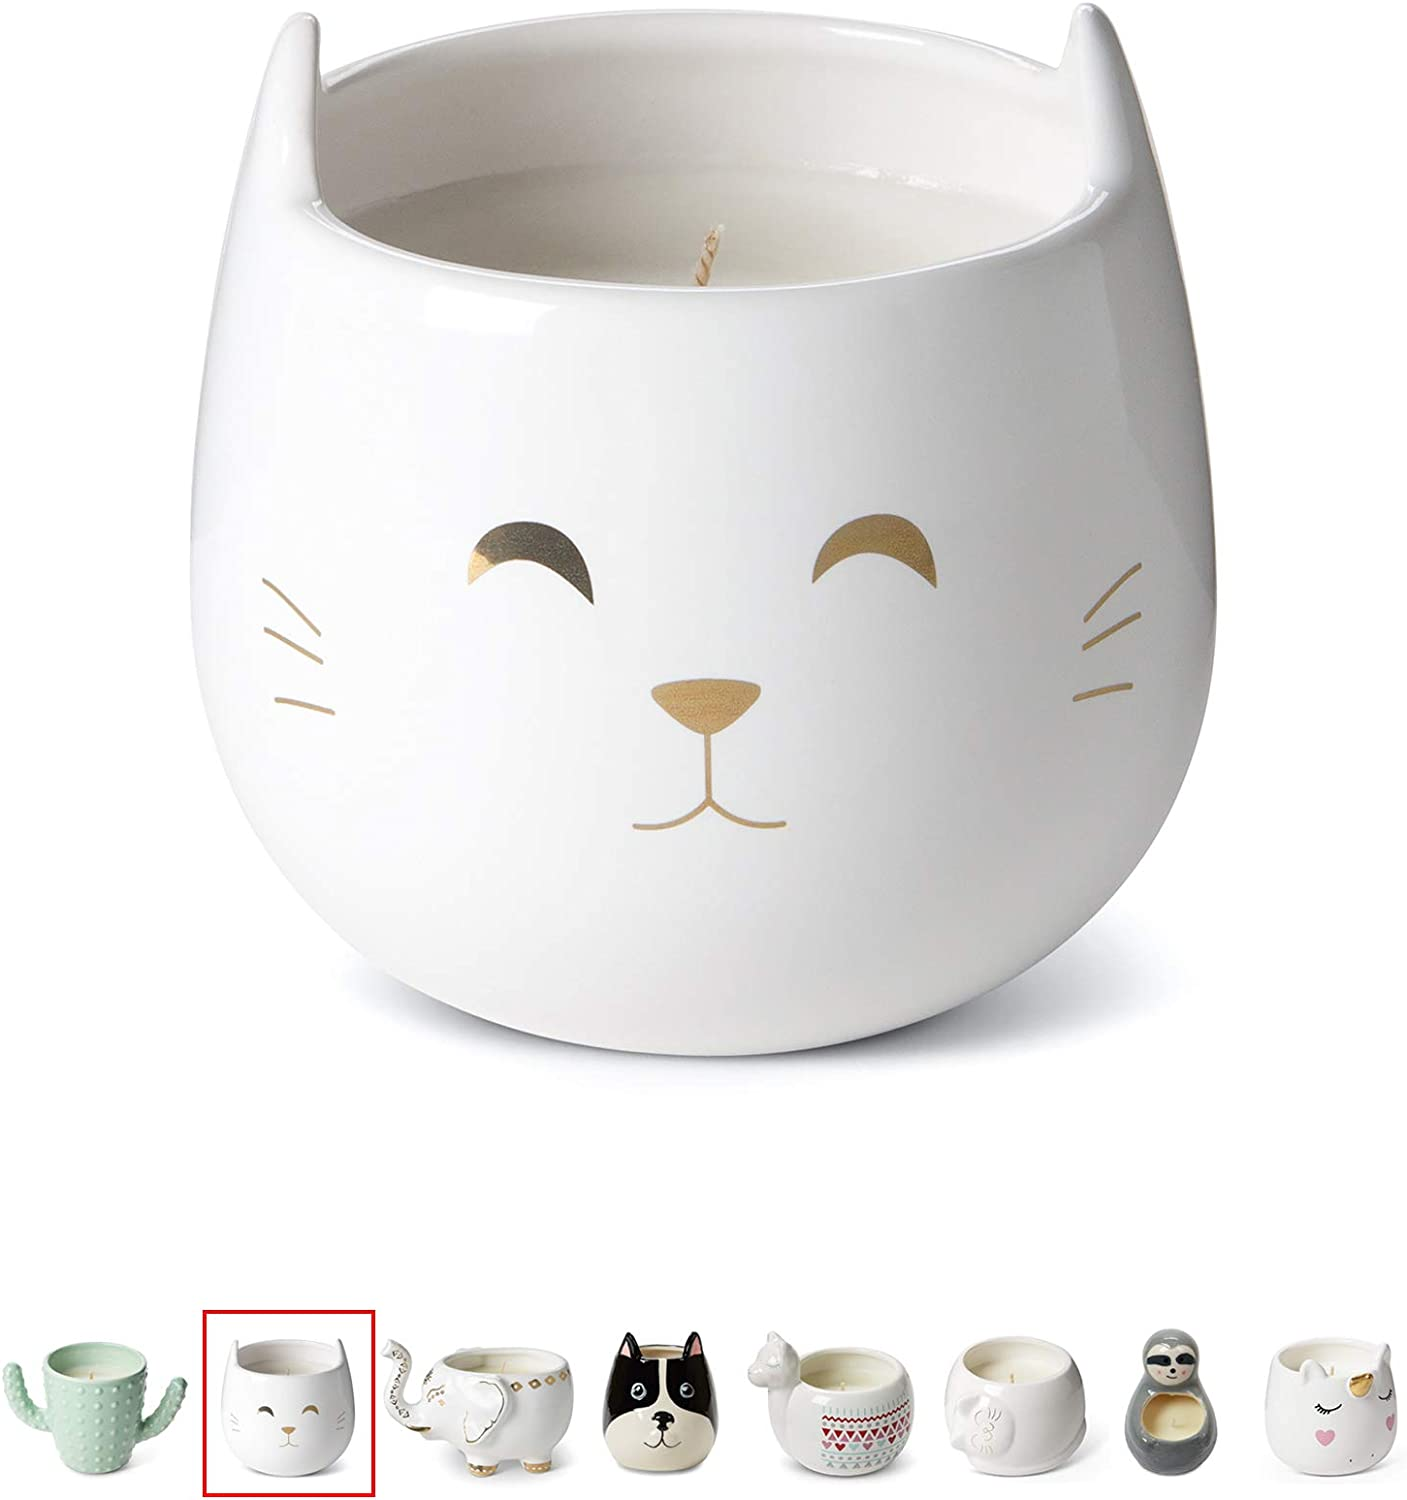 Tri-Coastal Design Small Cute Scented Wax Candles Ceramic Cat Shaped Candle for Aromatherapy, Stress Relief and Relaxation - Calming Vanilla Caramel Aroma Scented Luxury Candle - 12 Oz - White Cat